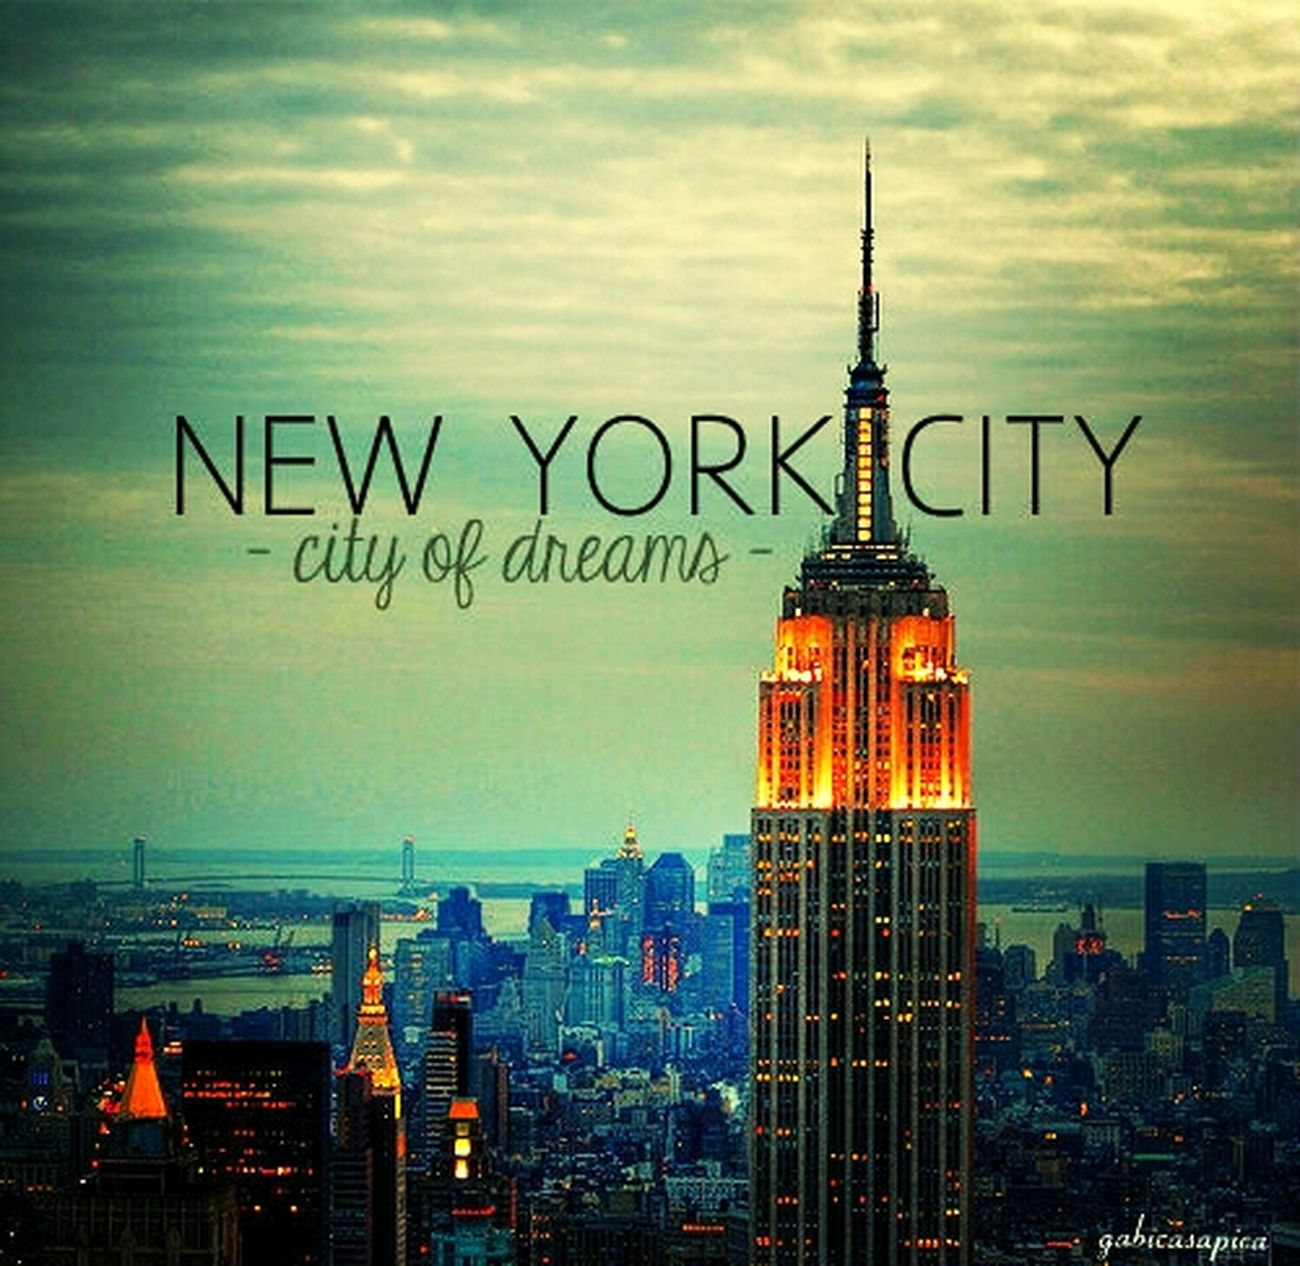 New York City The City Of Dreams <3